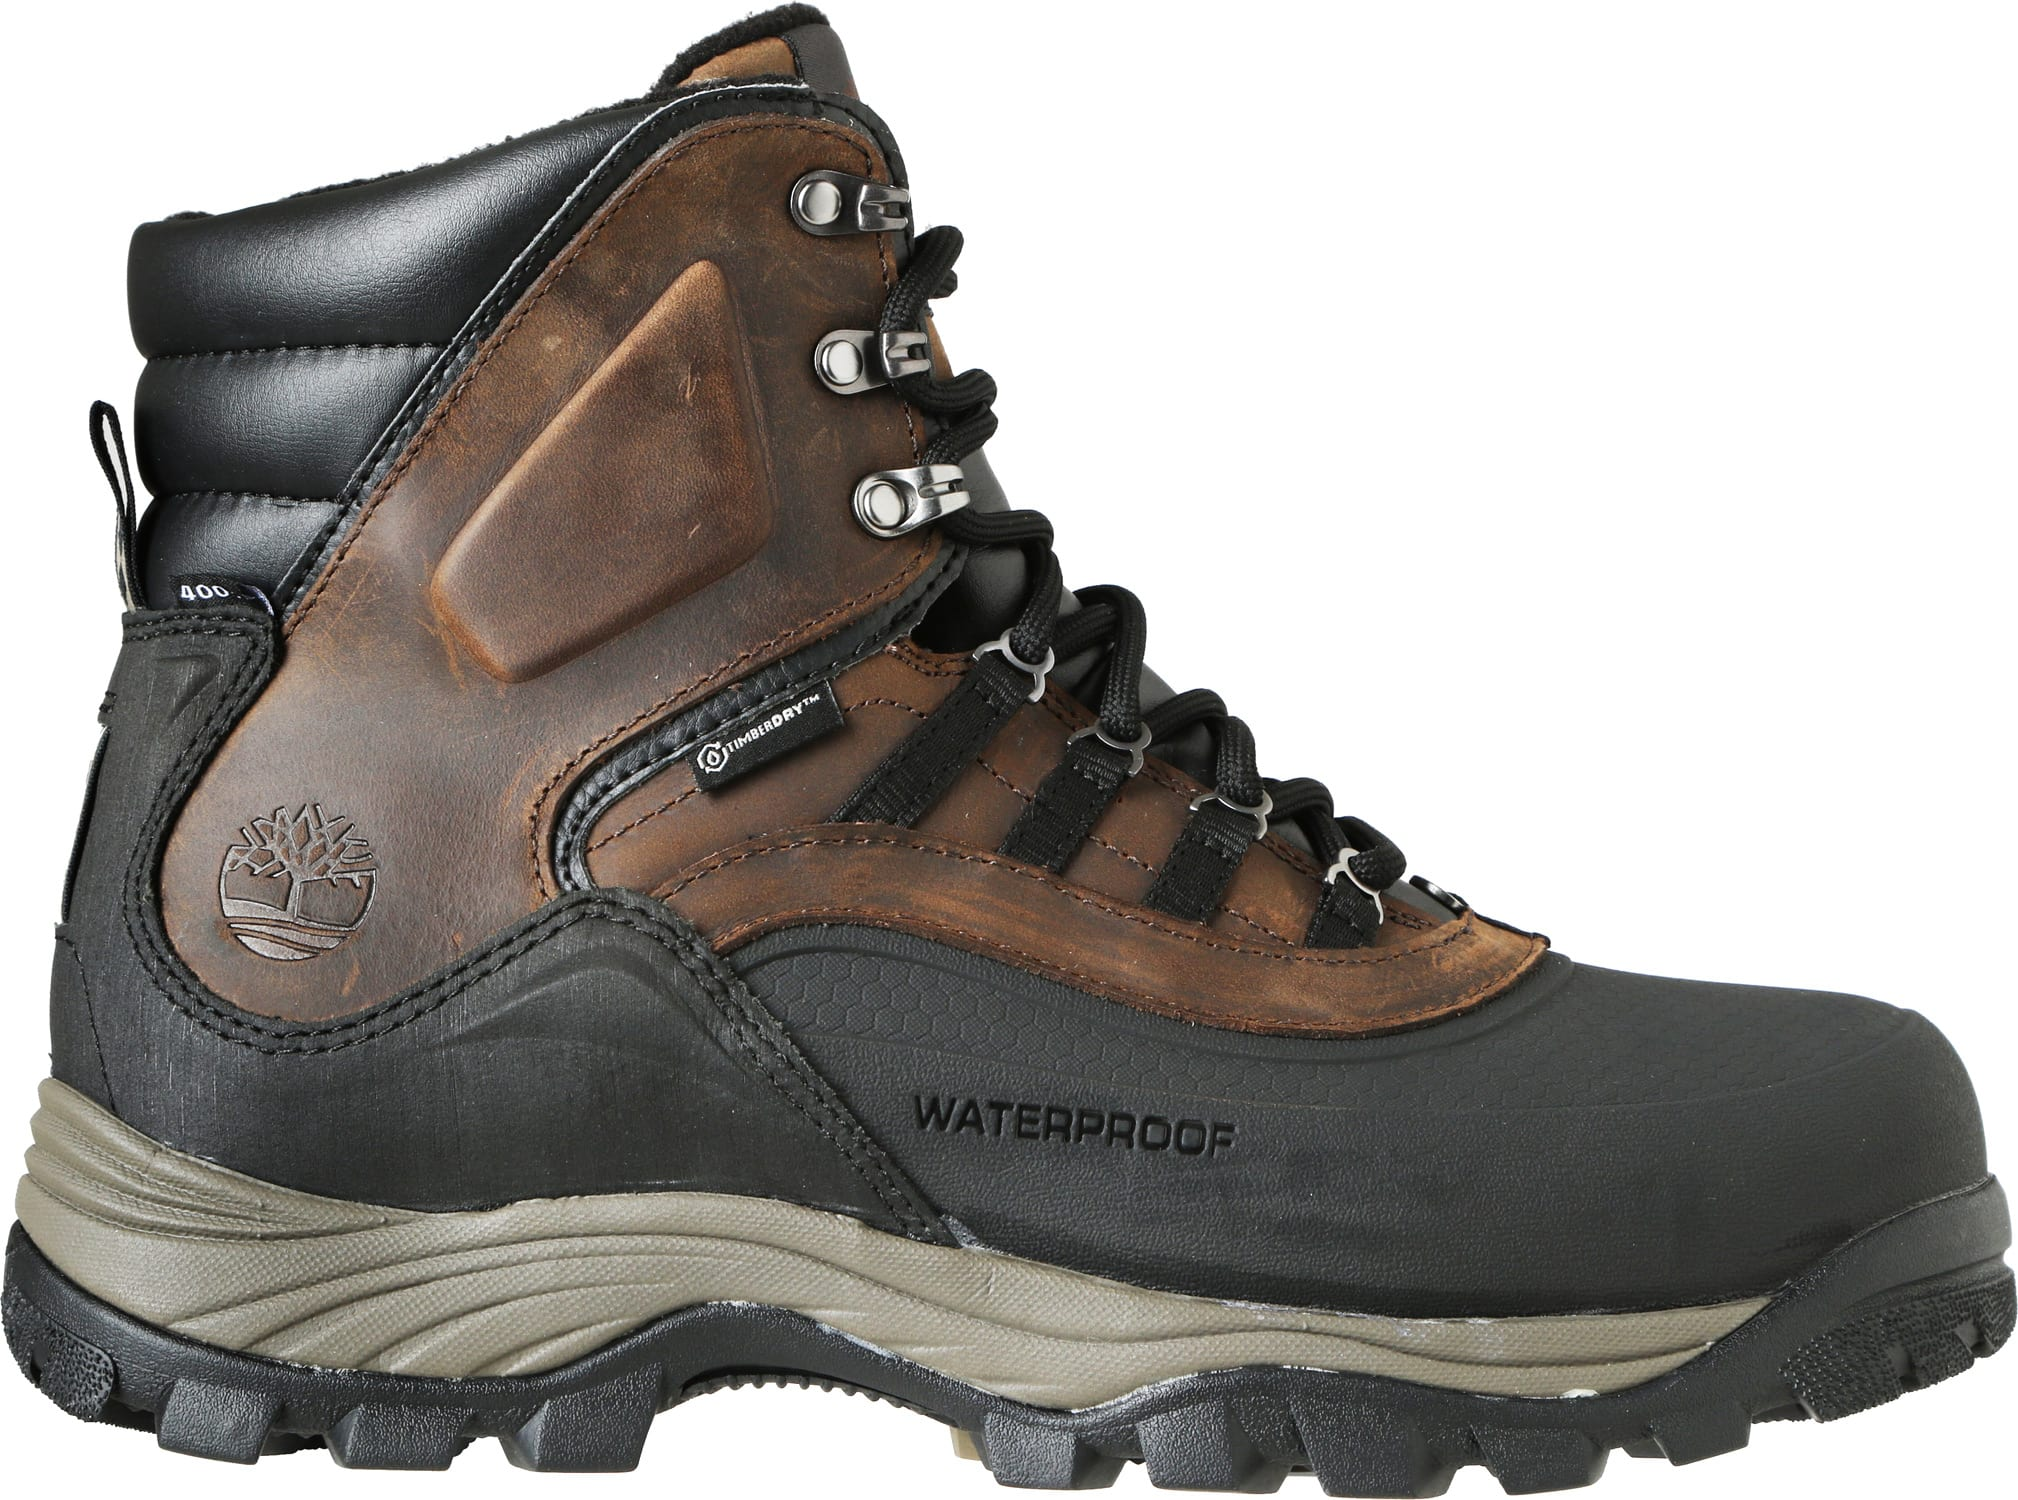 Trail Shell Toe WP Insulated Hiking Boots